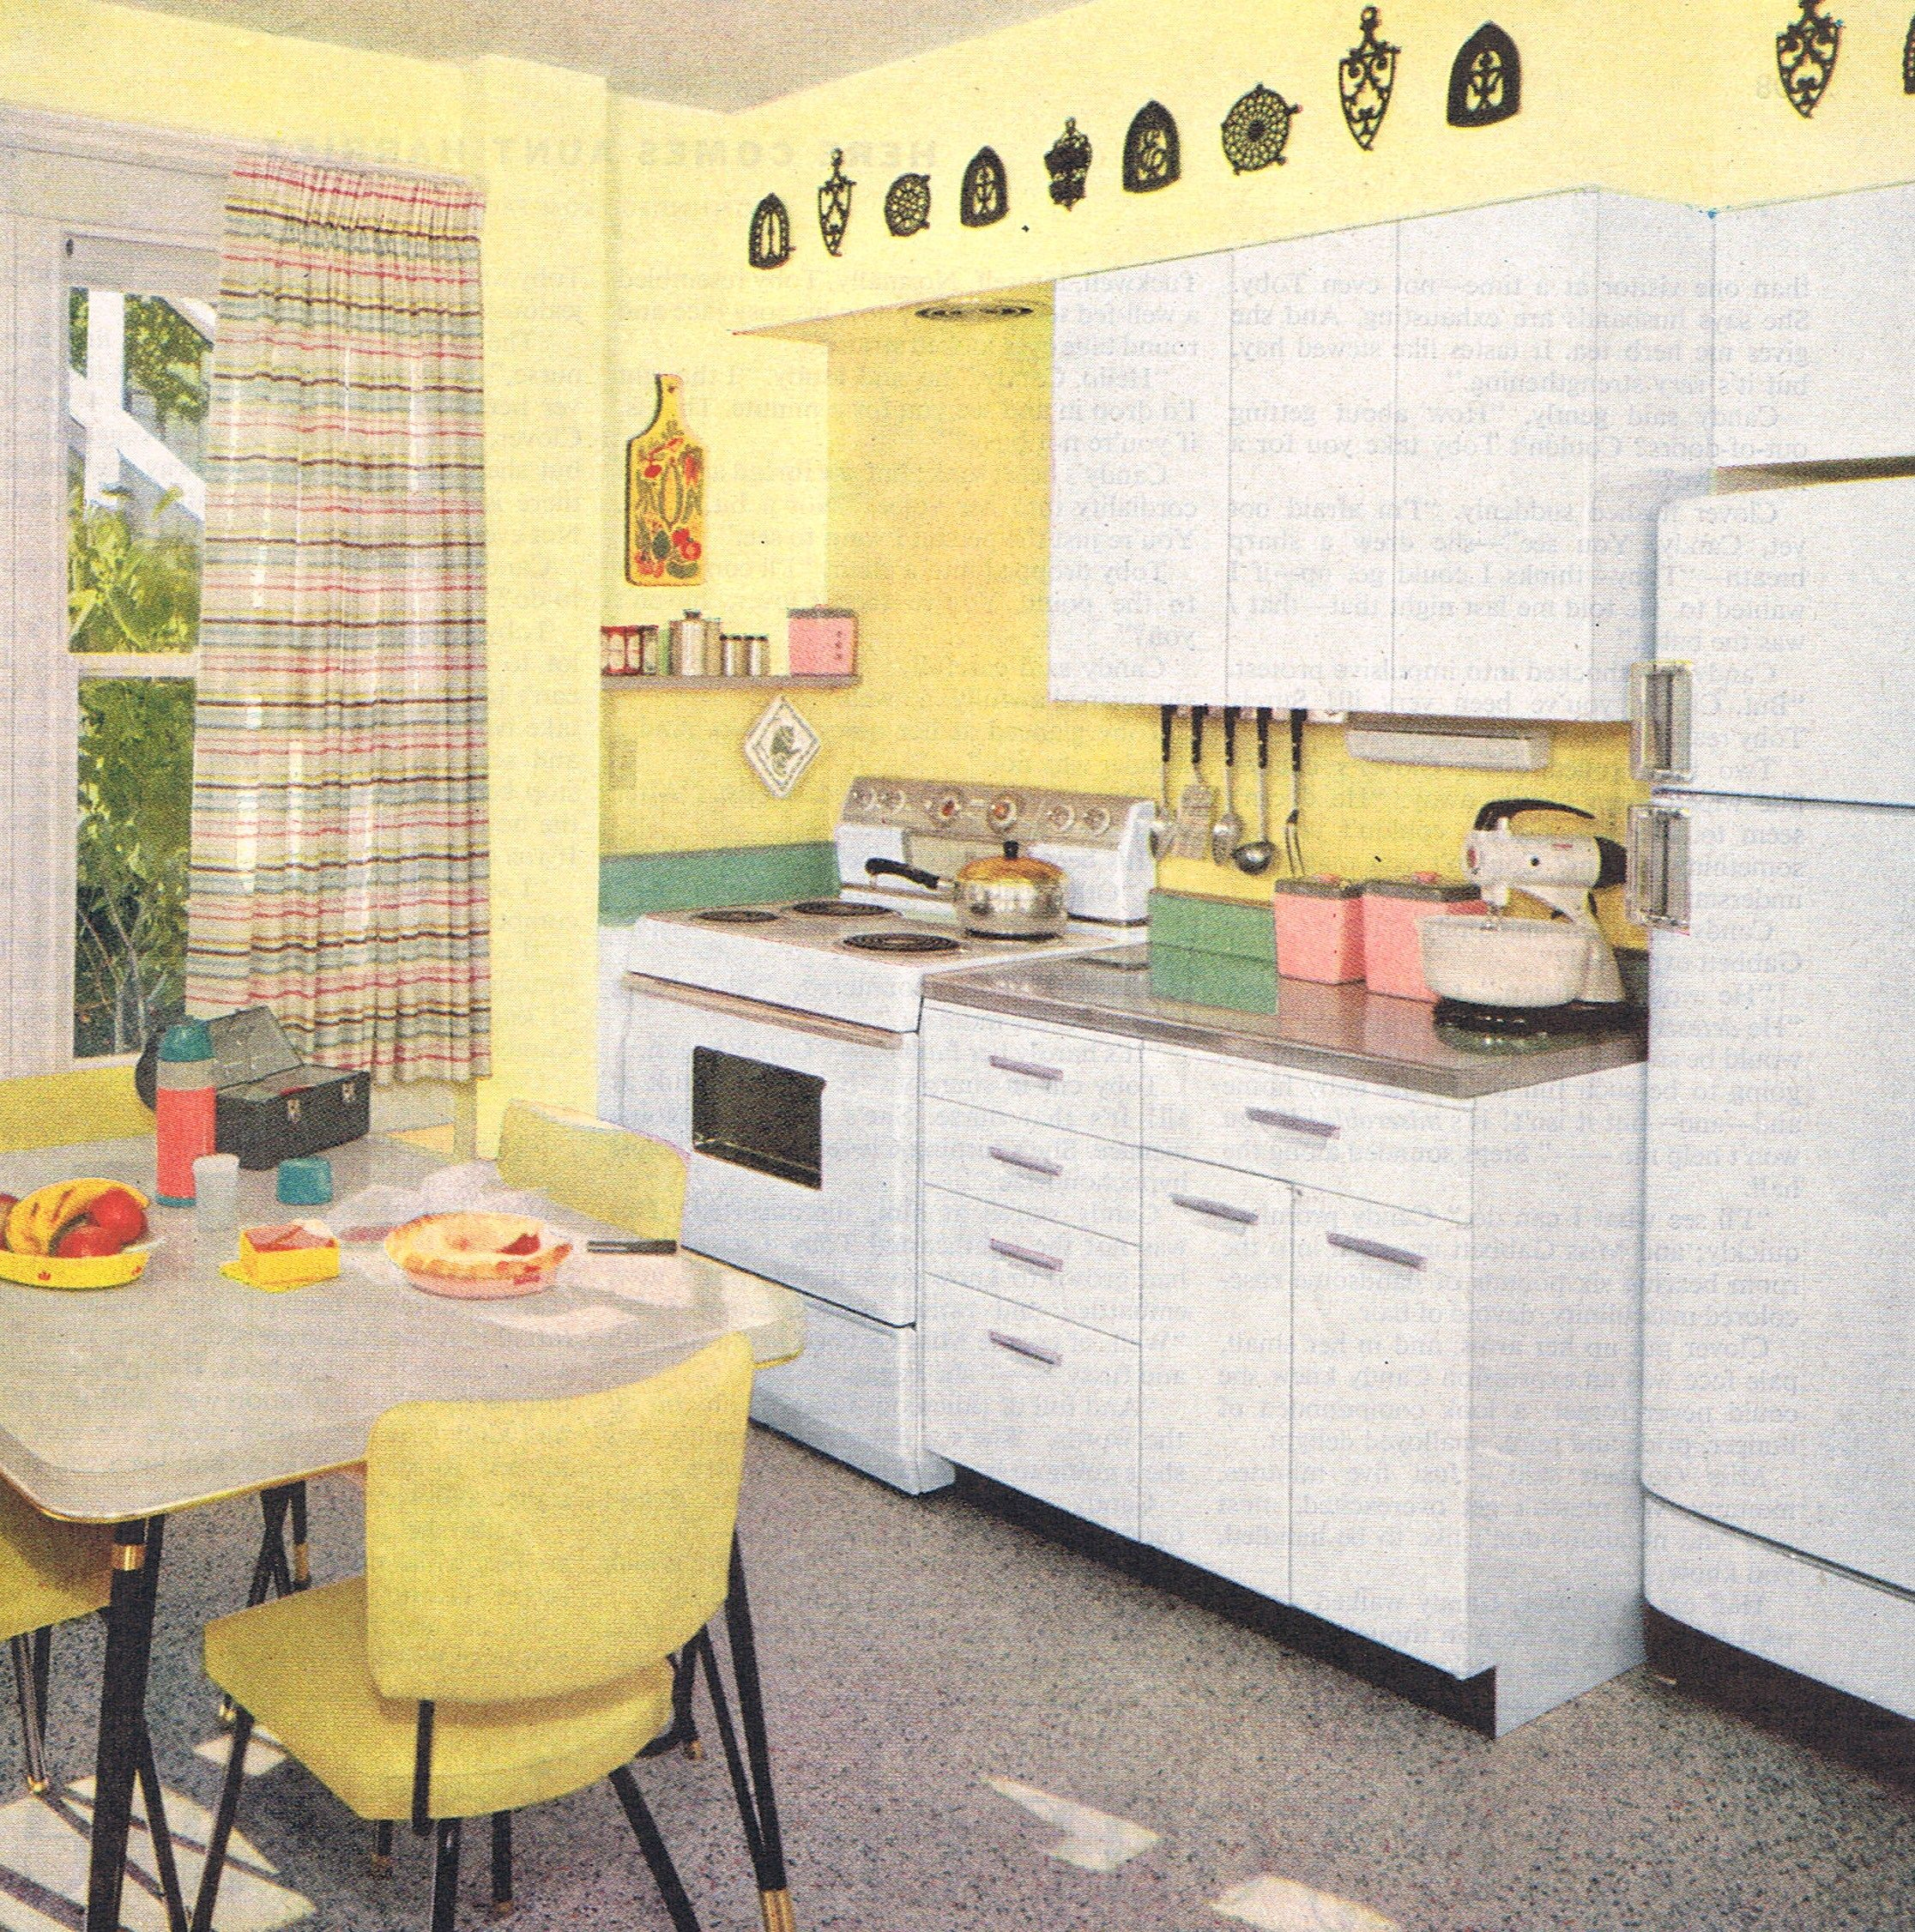 60 Best Kitchen Color Samples Images On Pinterest: Bright Kitchen Design, 1957 - Interesting For Color